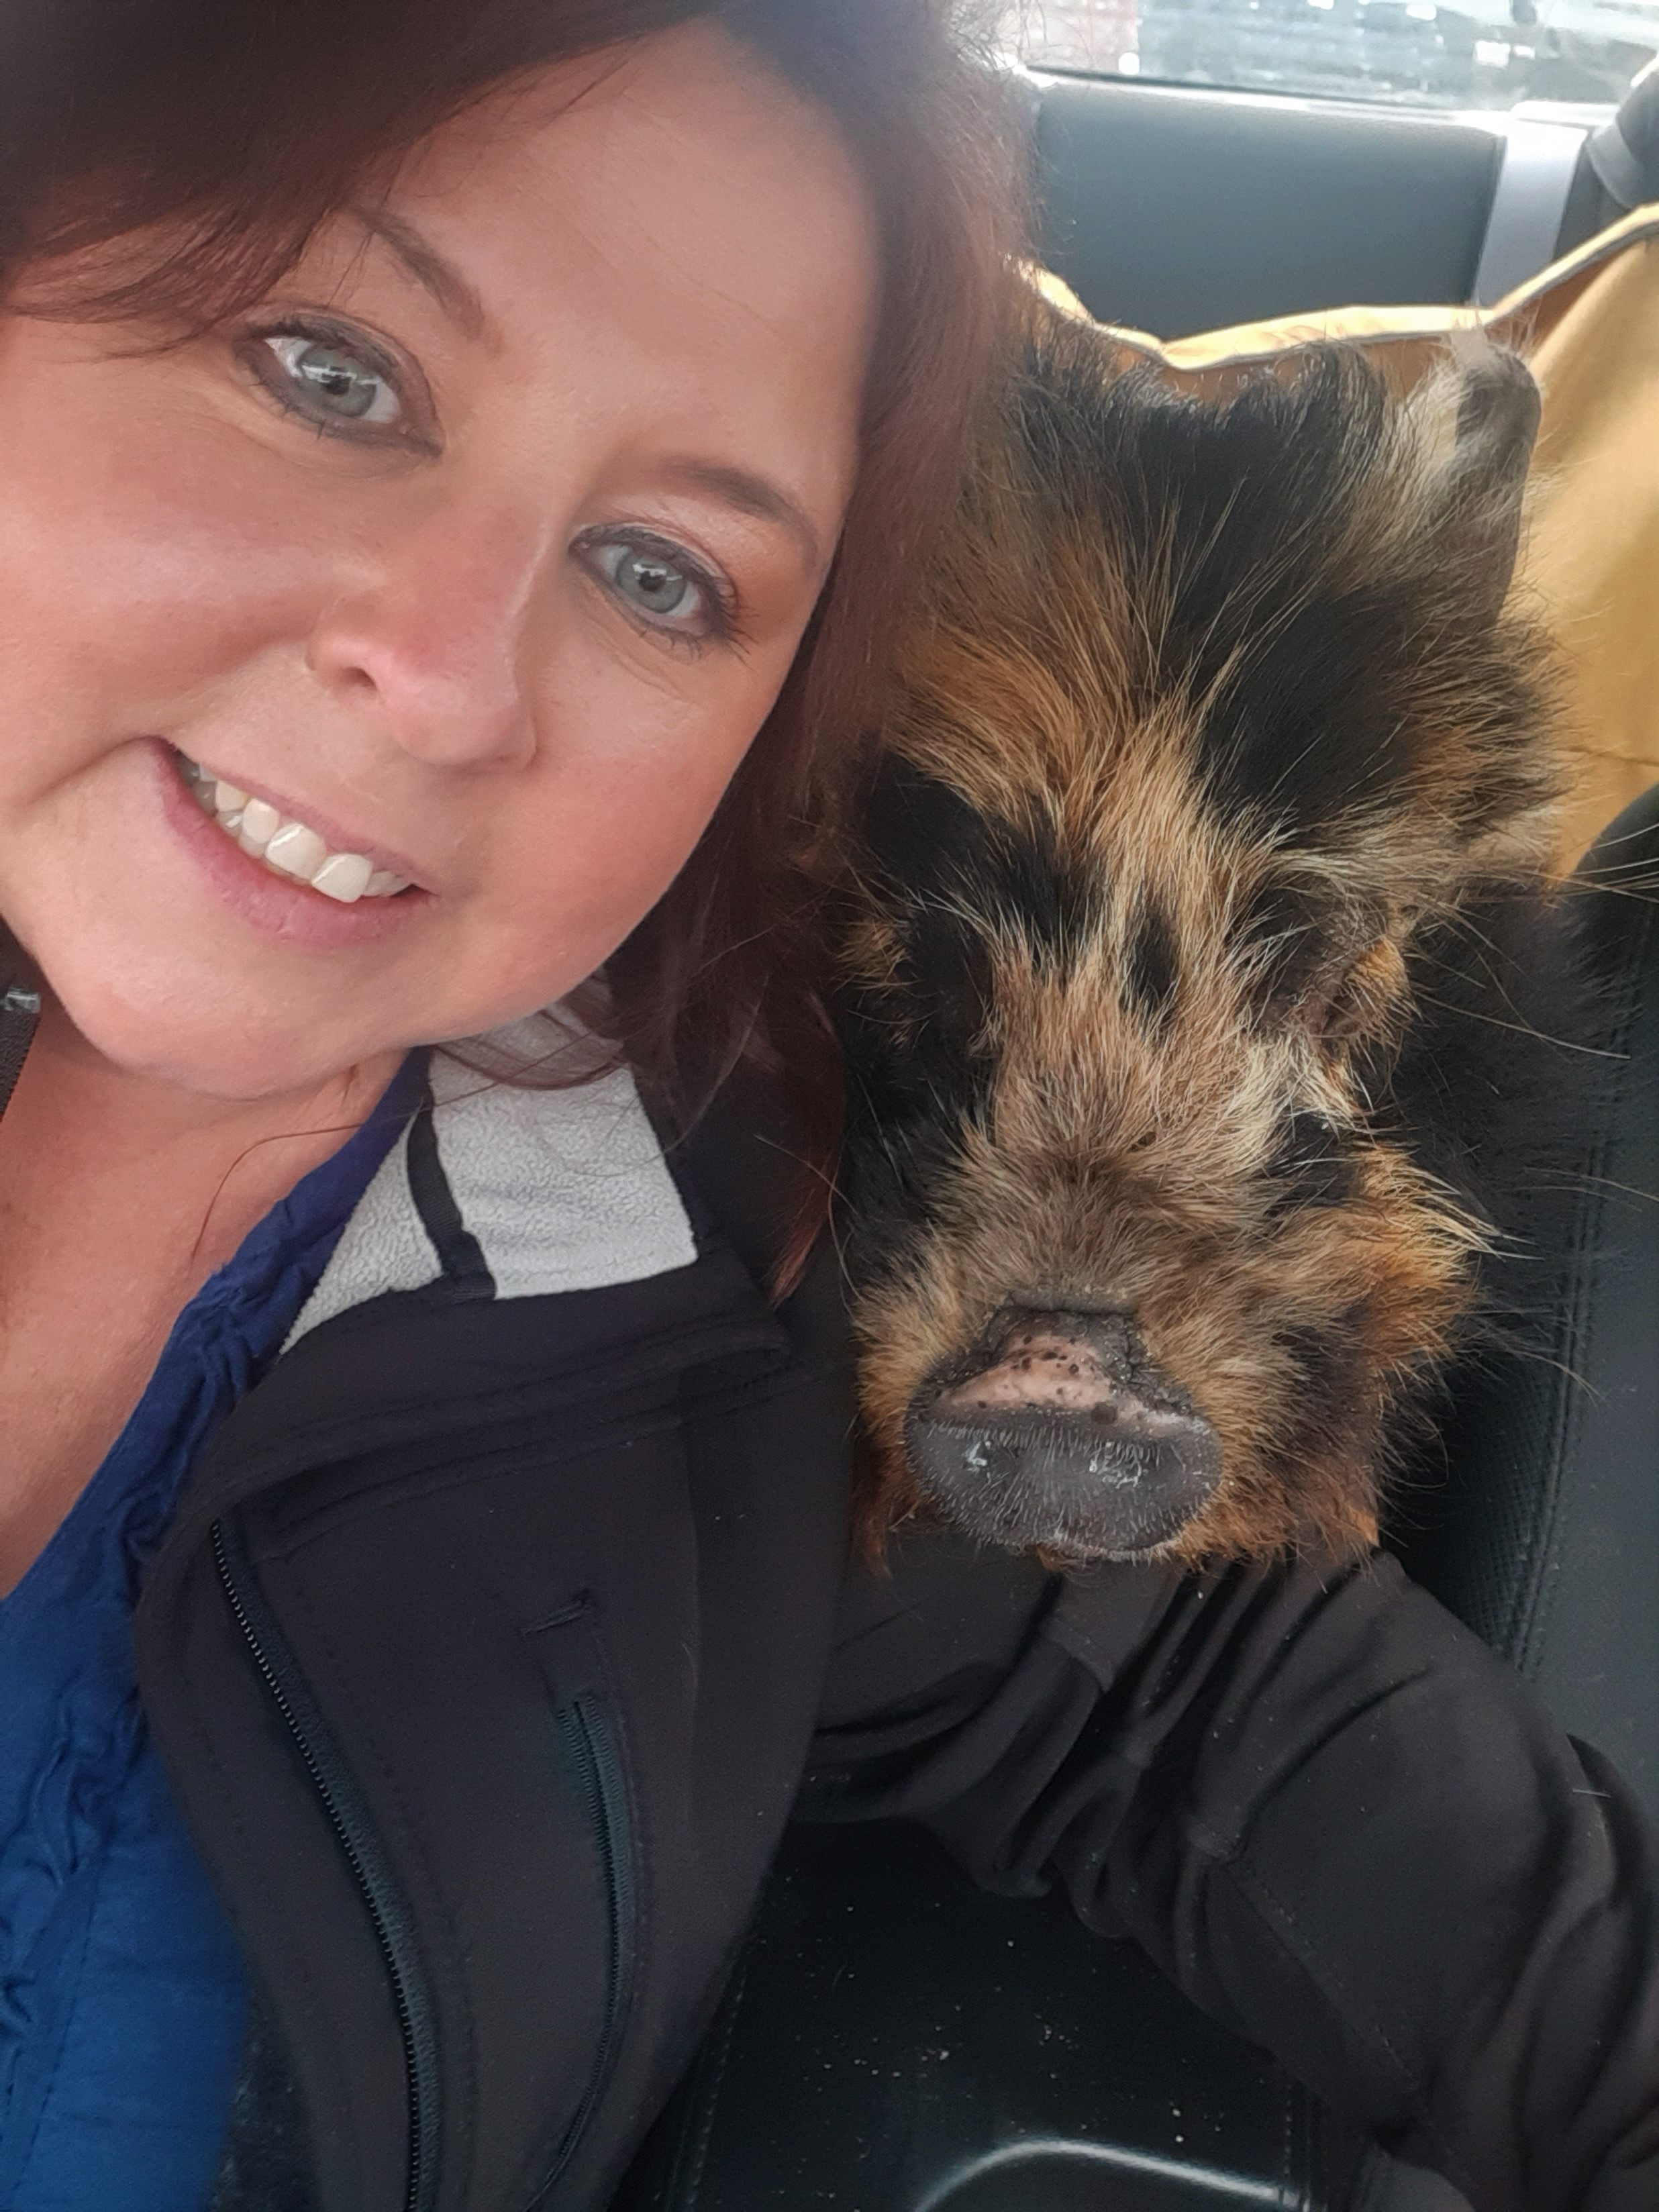 Selfie with pig